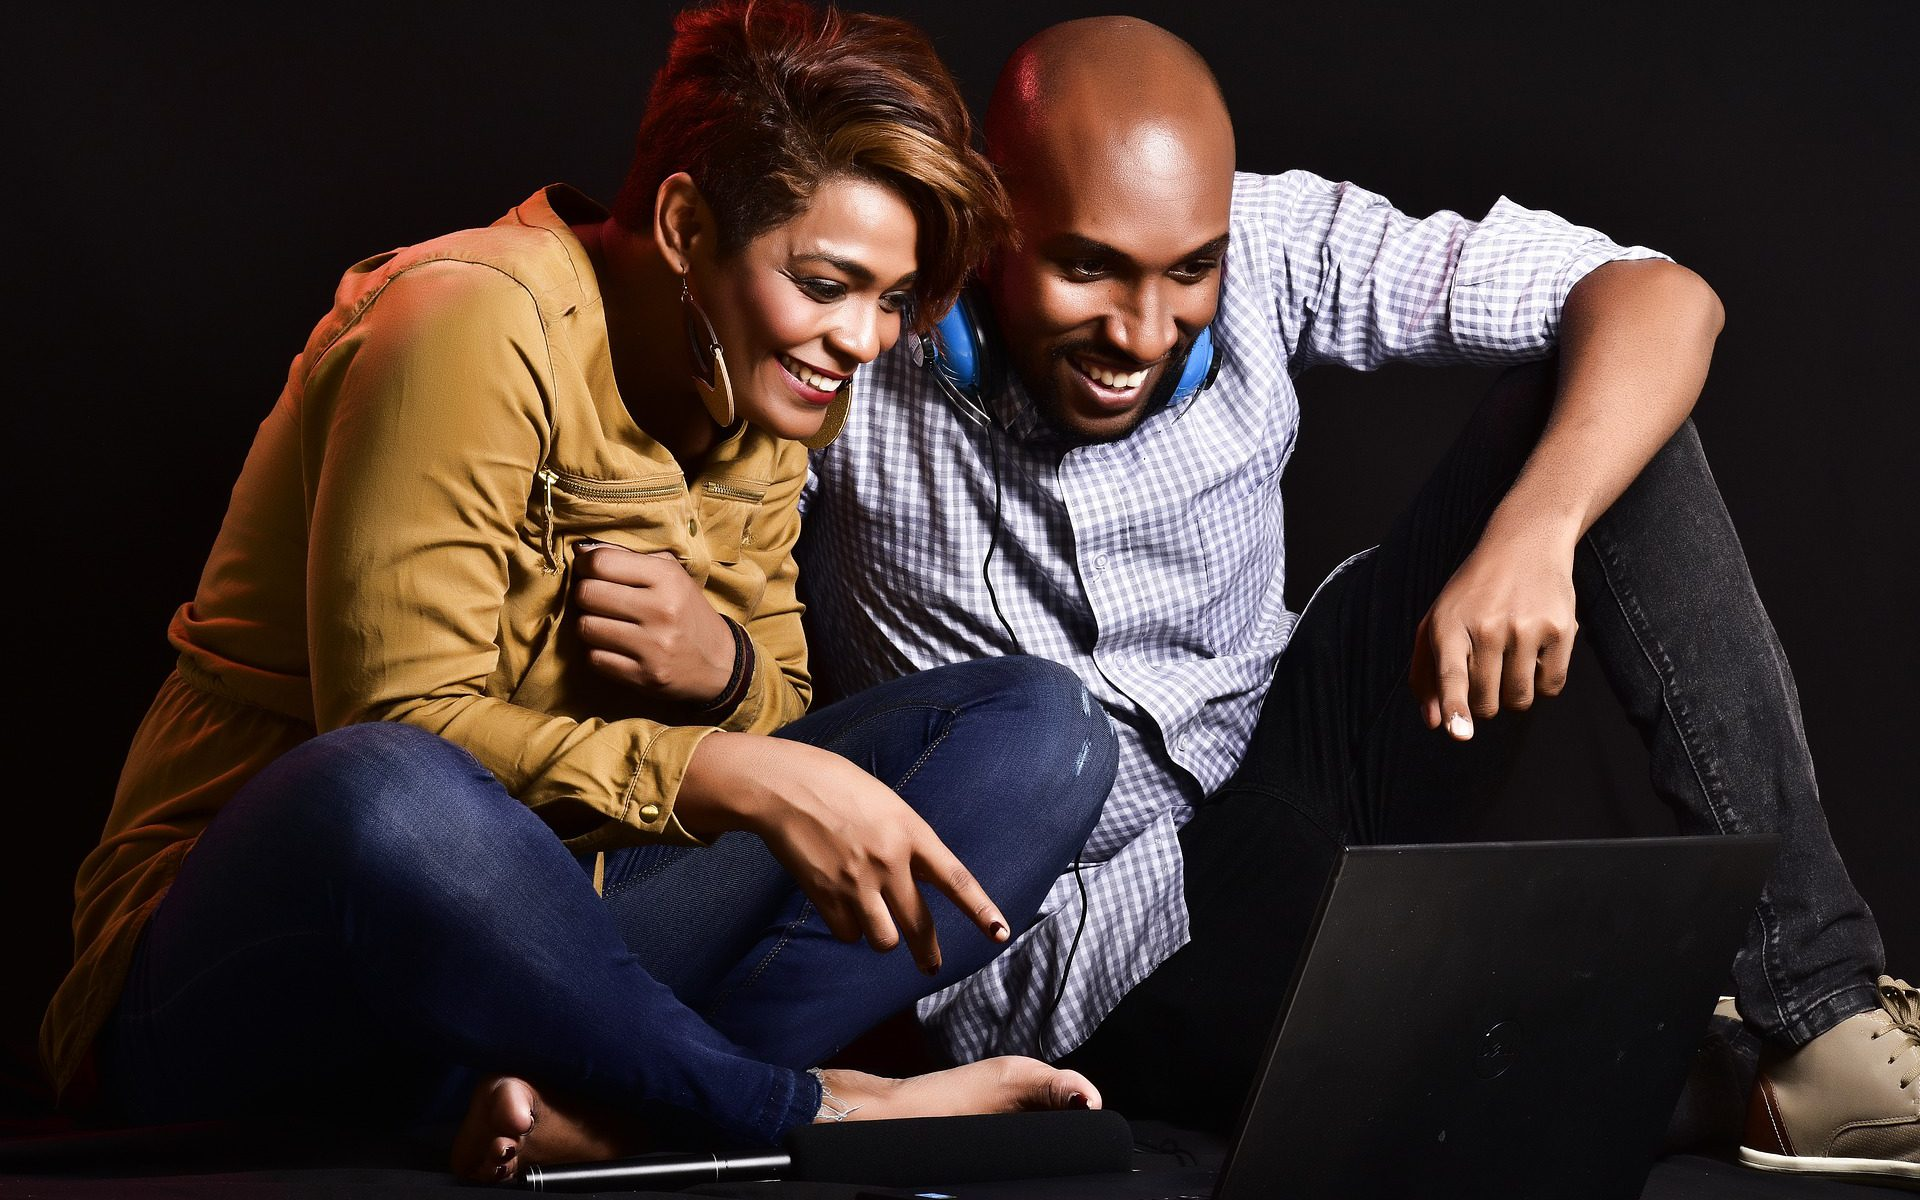 woman and man sitting in front of computer smiling